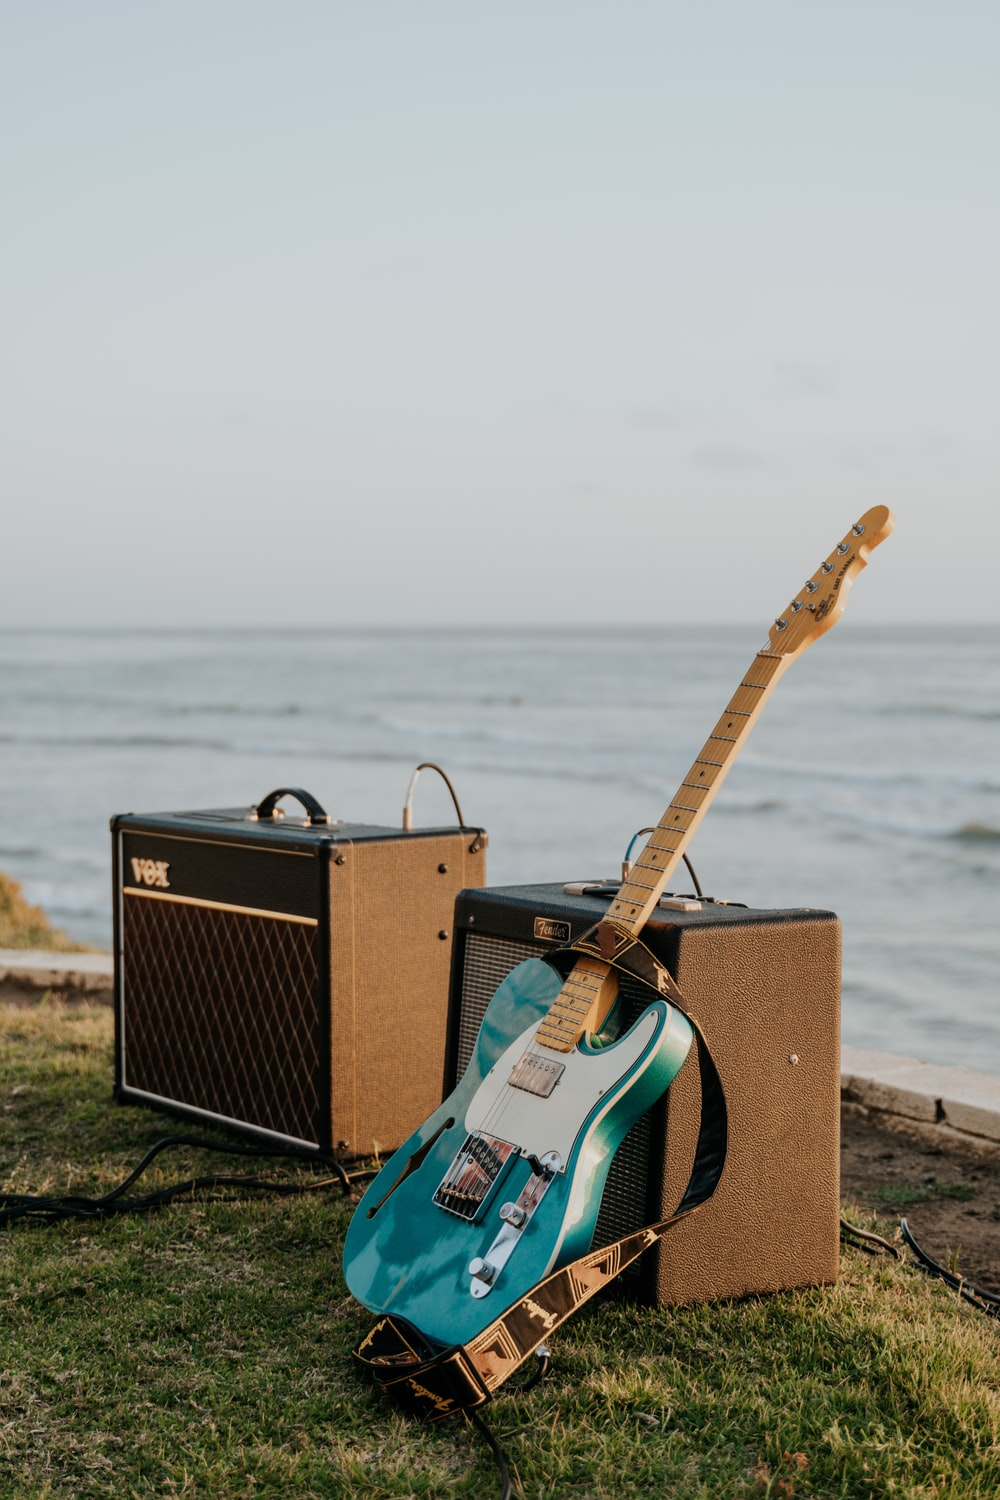 brown and black guitar amplifier on brown wooden dock during daytime